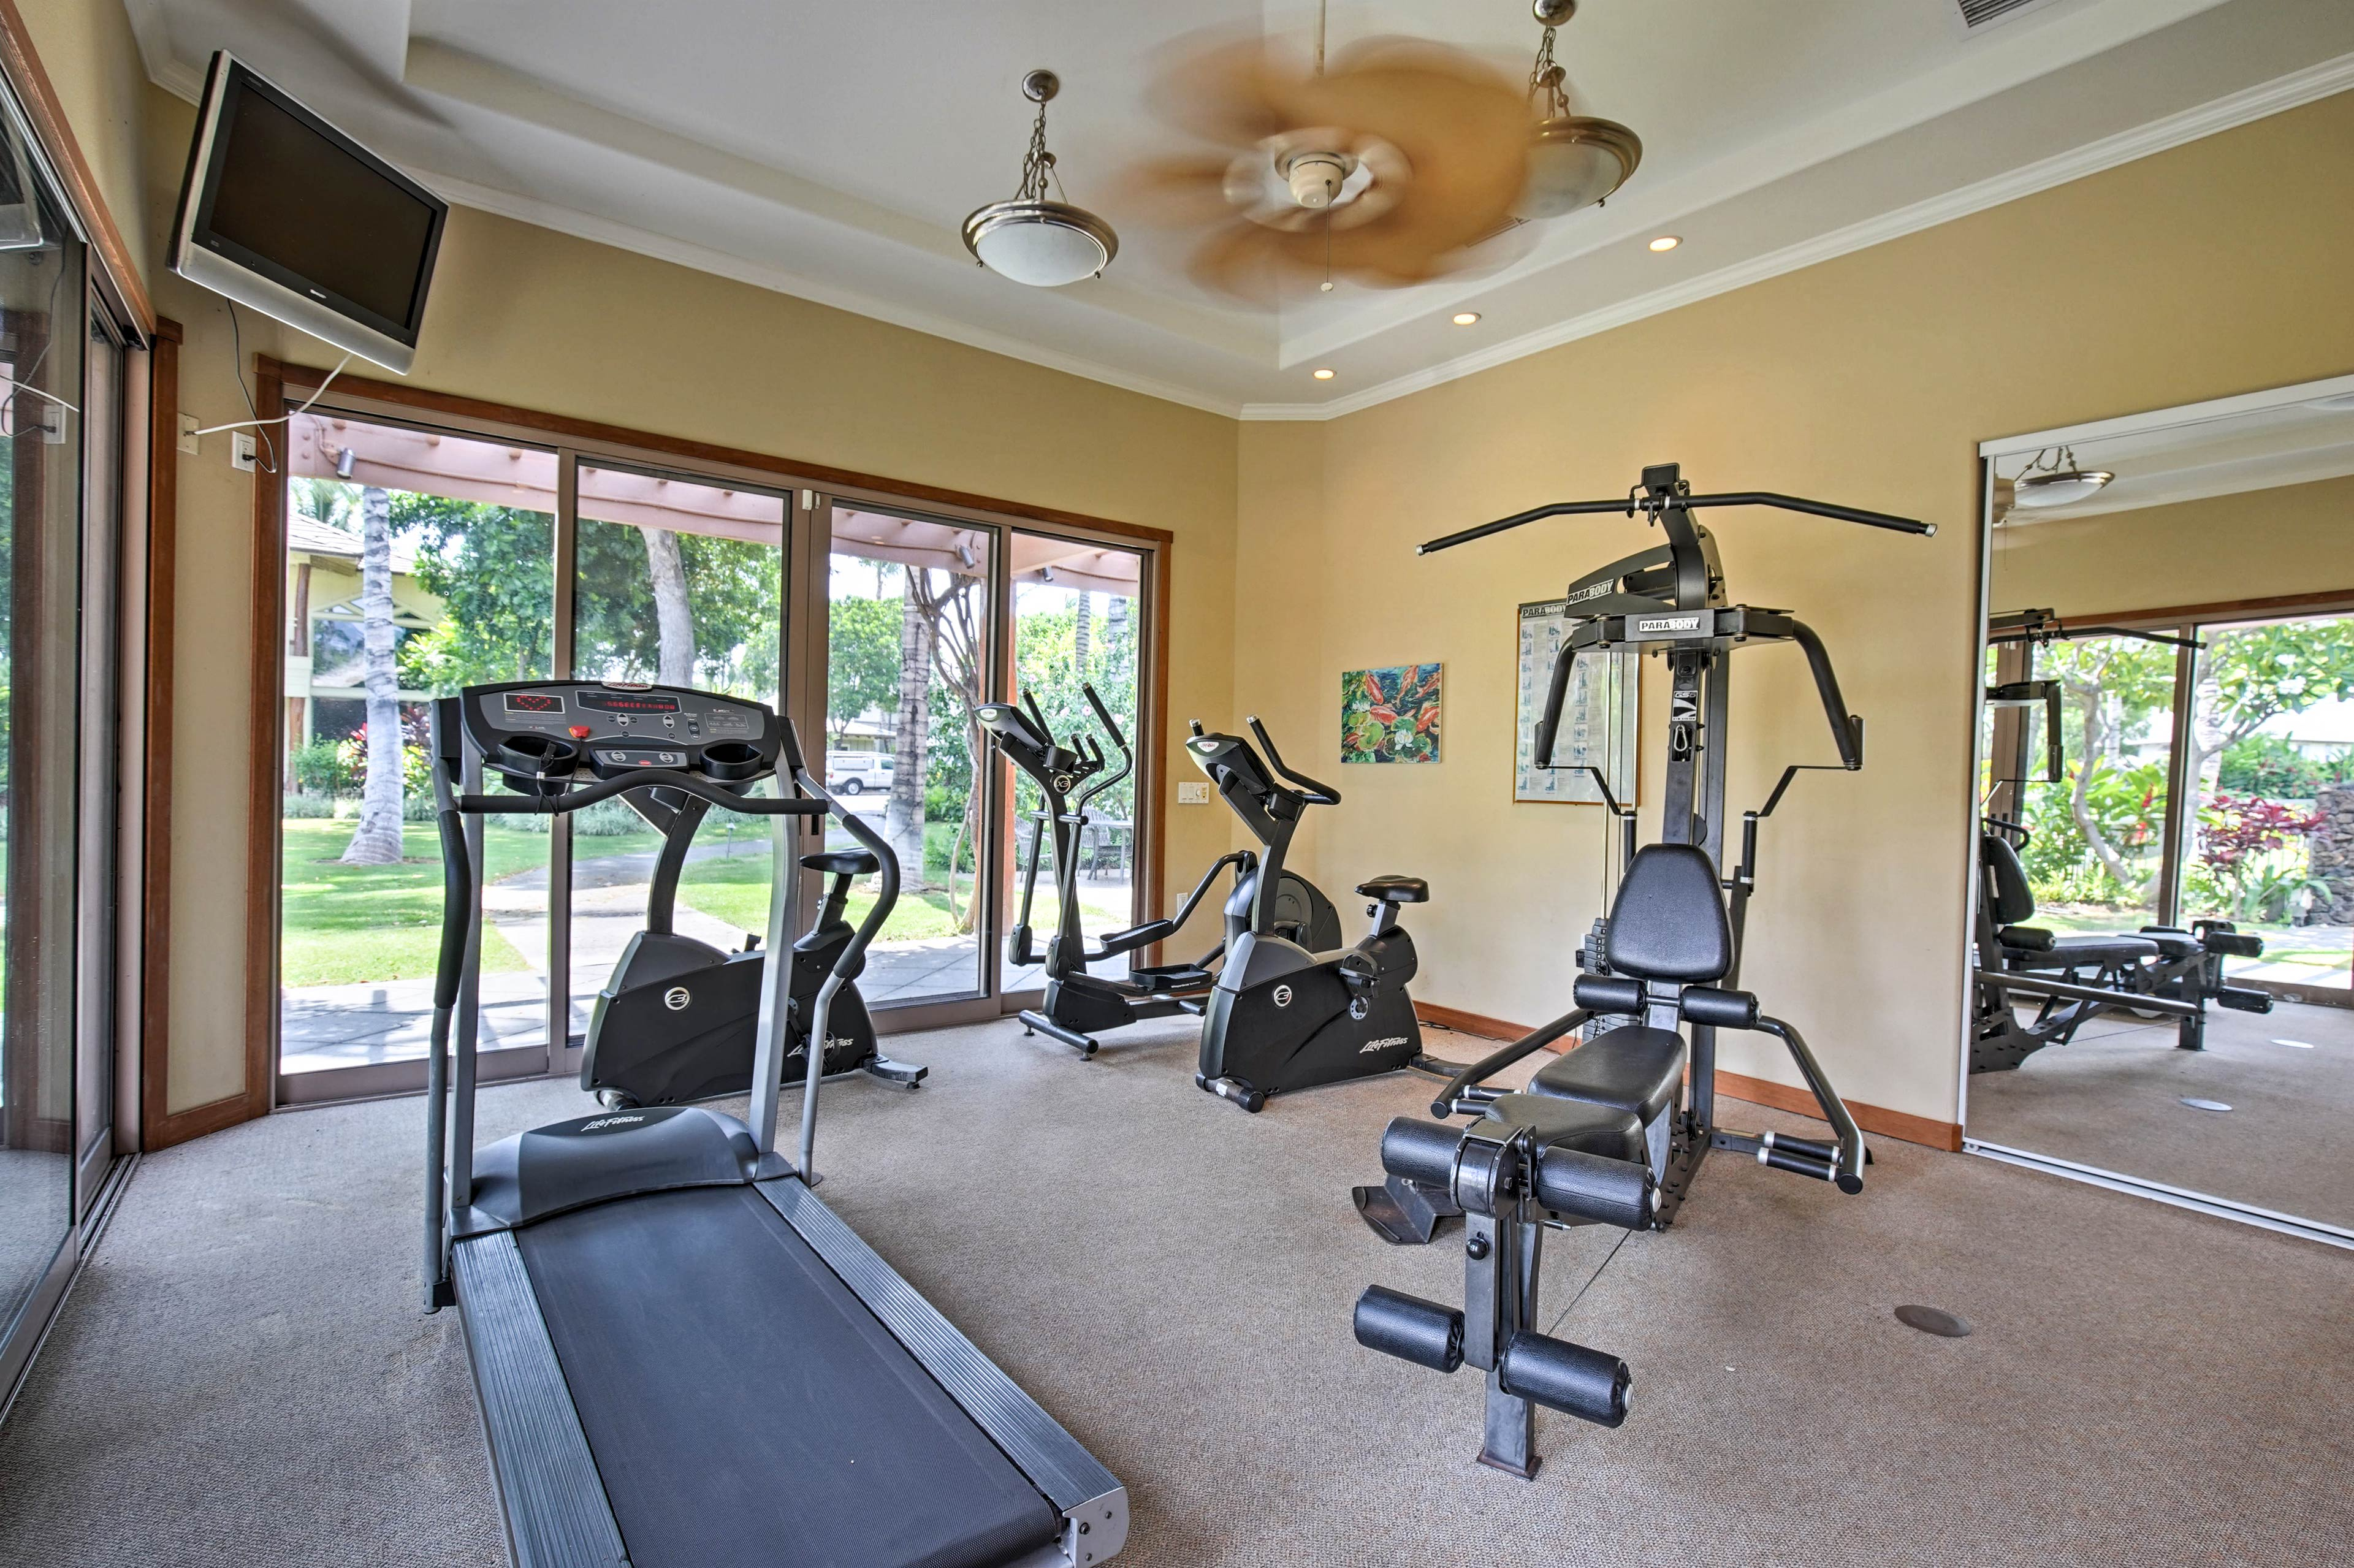 Keep up your workout routine in the community fitness center.